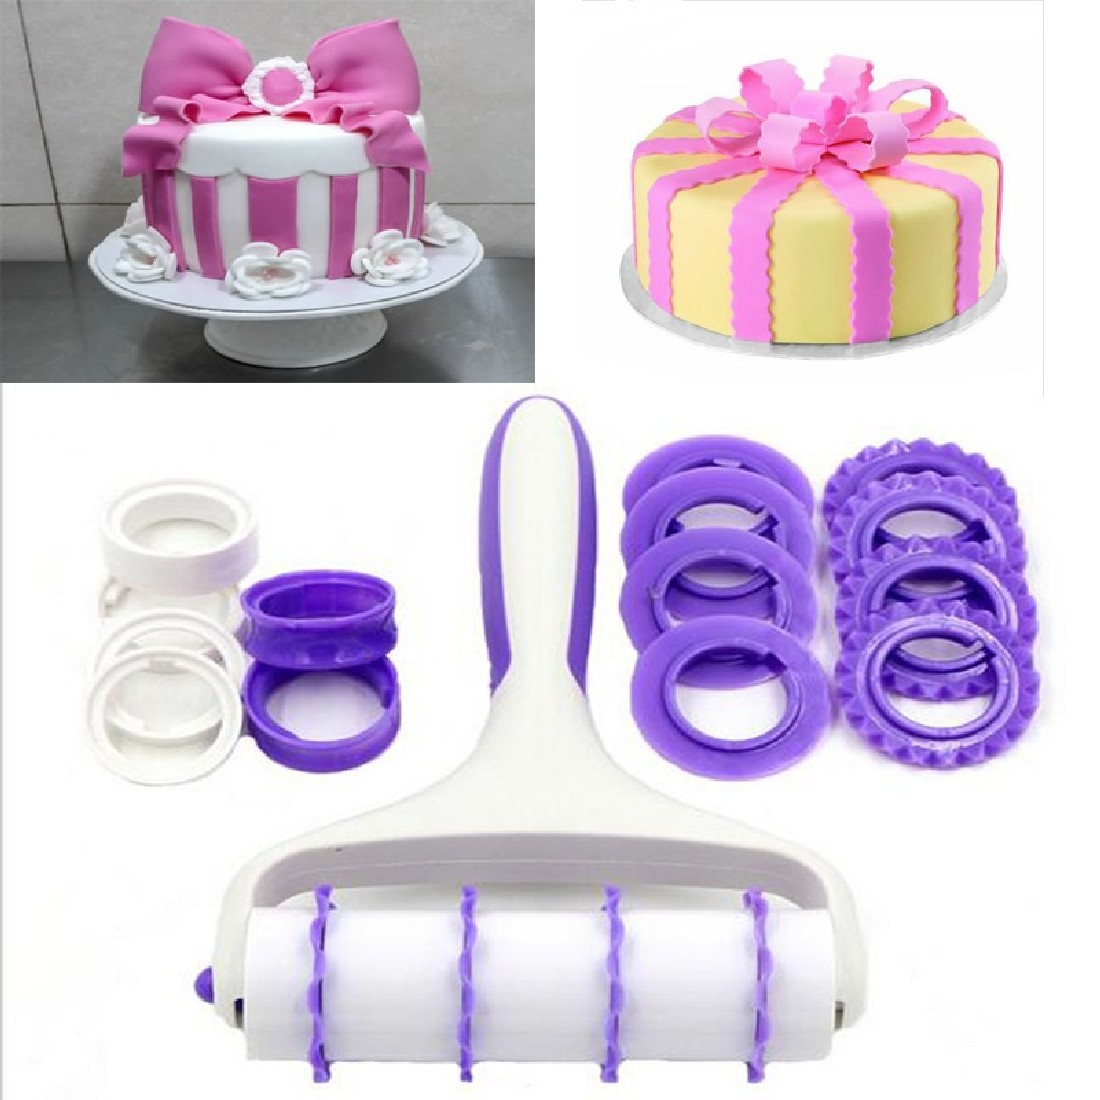 Cake Decorating Tools Big W